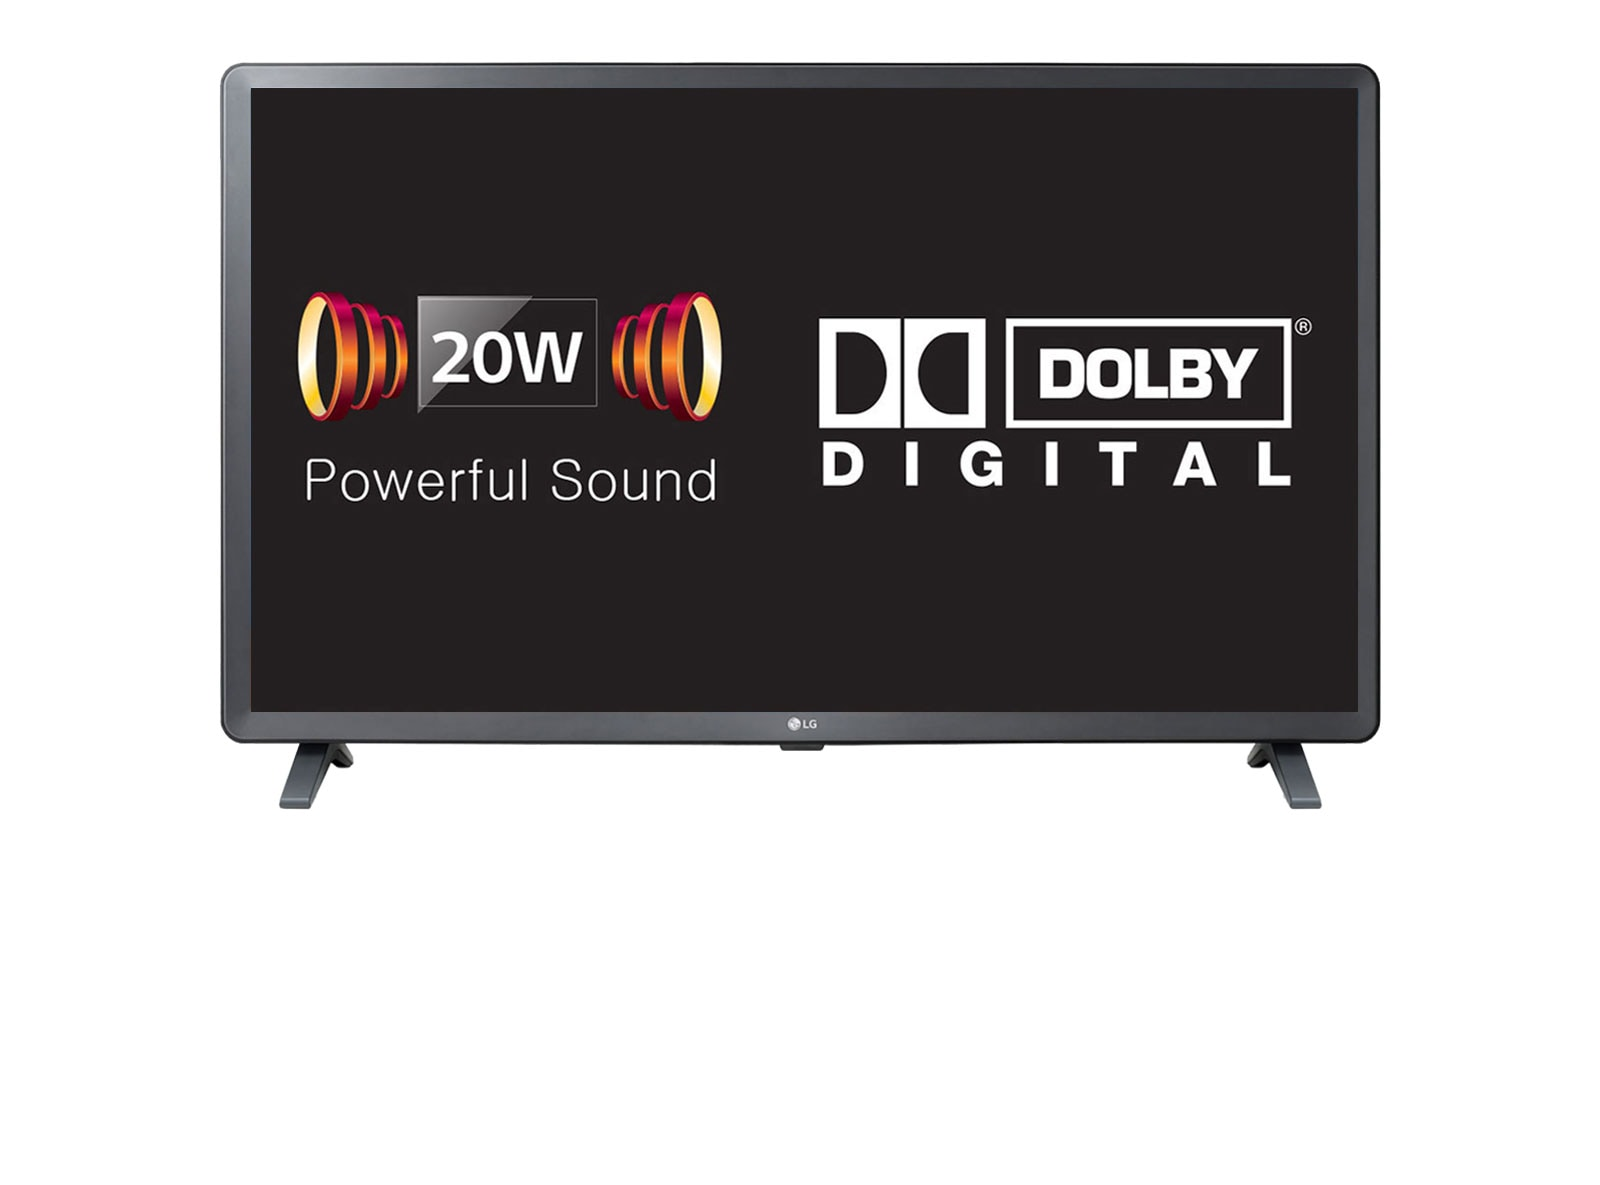 LG 32LK536BPTB 32 Inch LED TV - Compare Price & Specs | LG IN